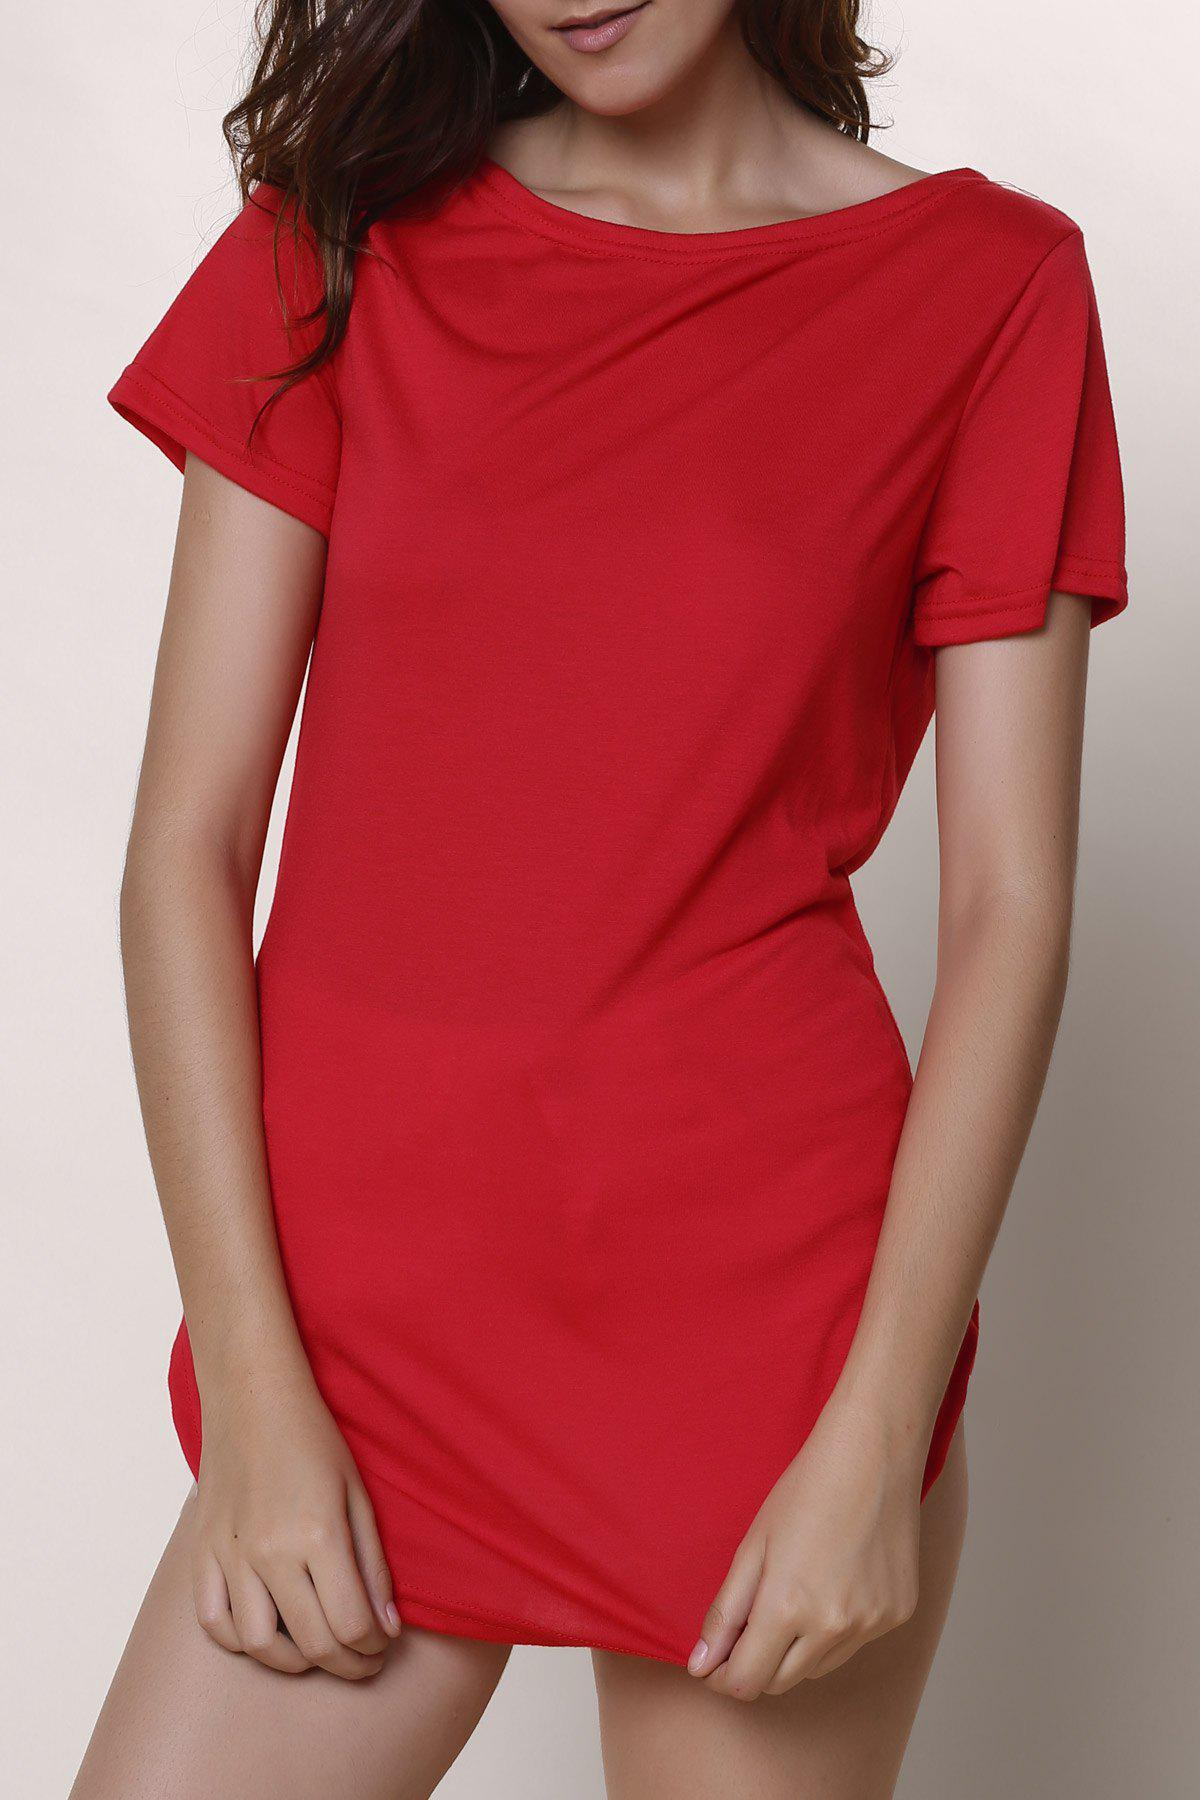 Casual Women's Jewel Neck Short Sleeve Solid Color Slit Dress - RED S